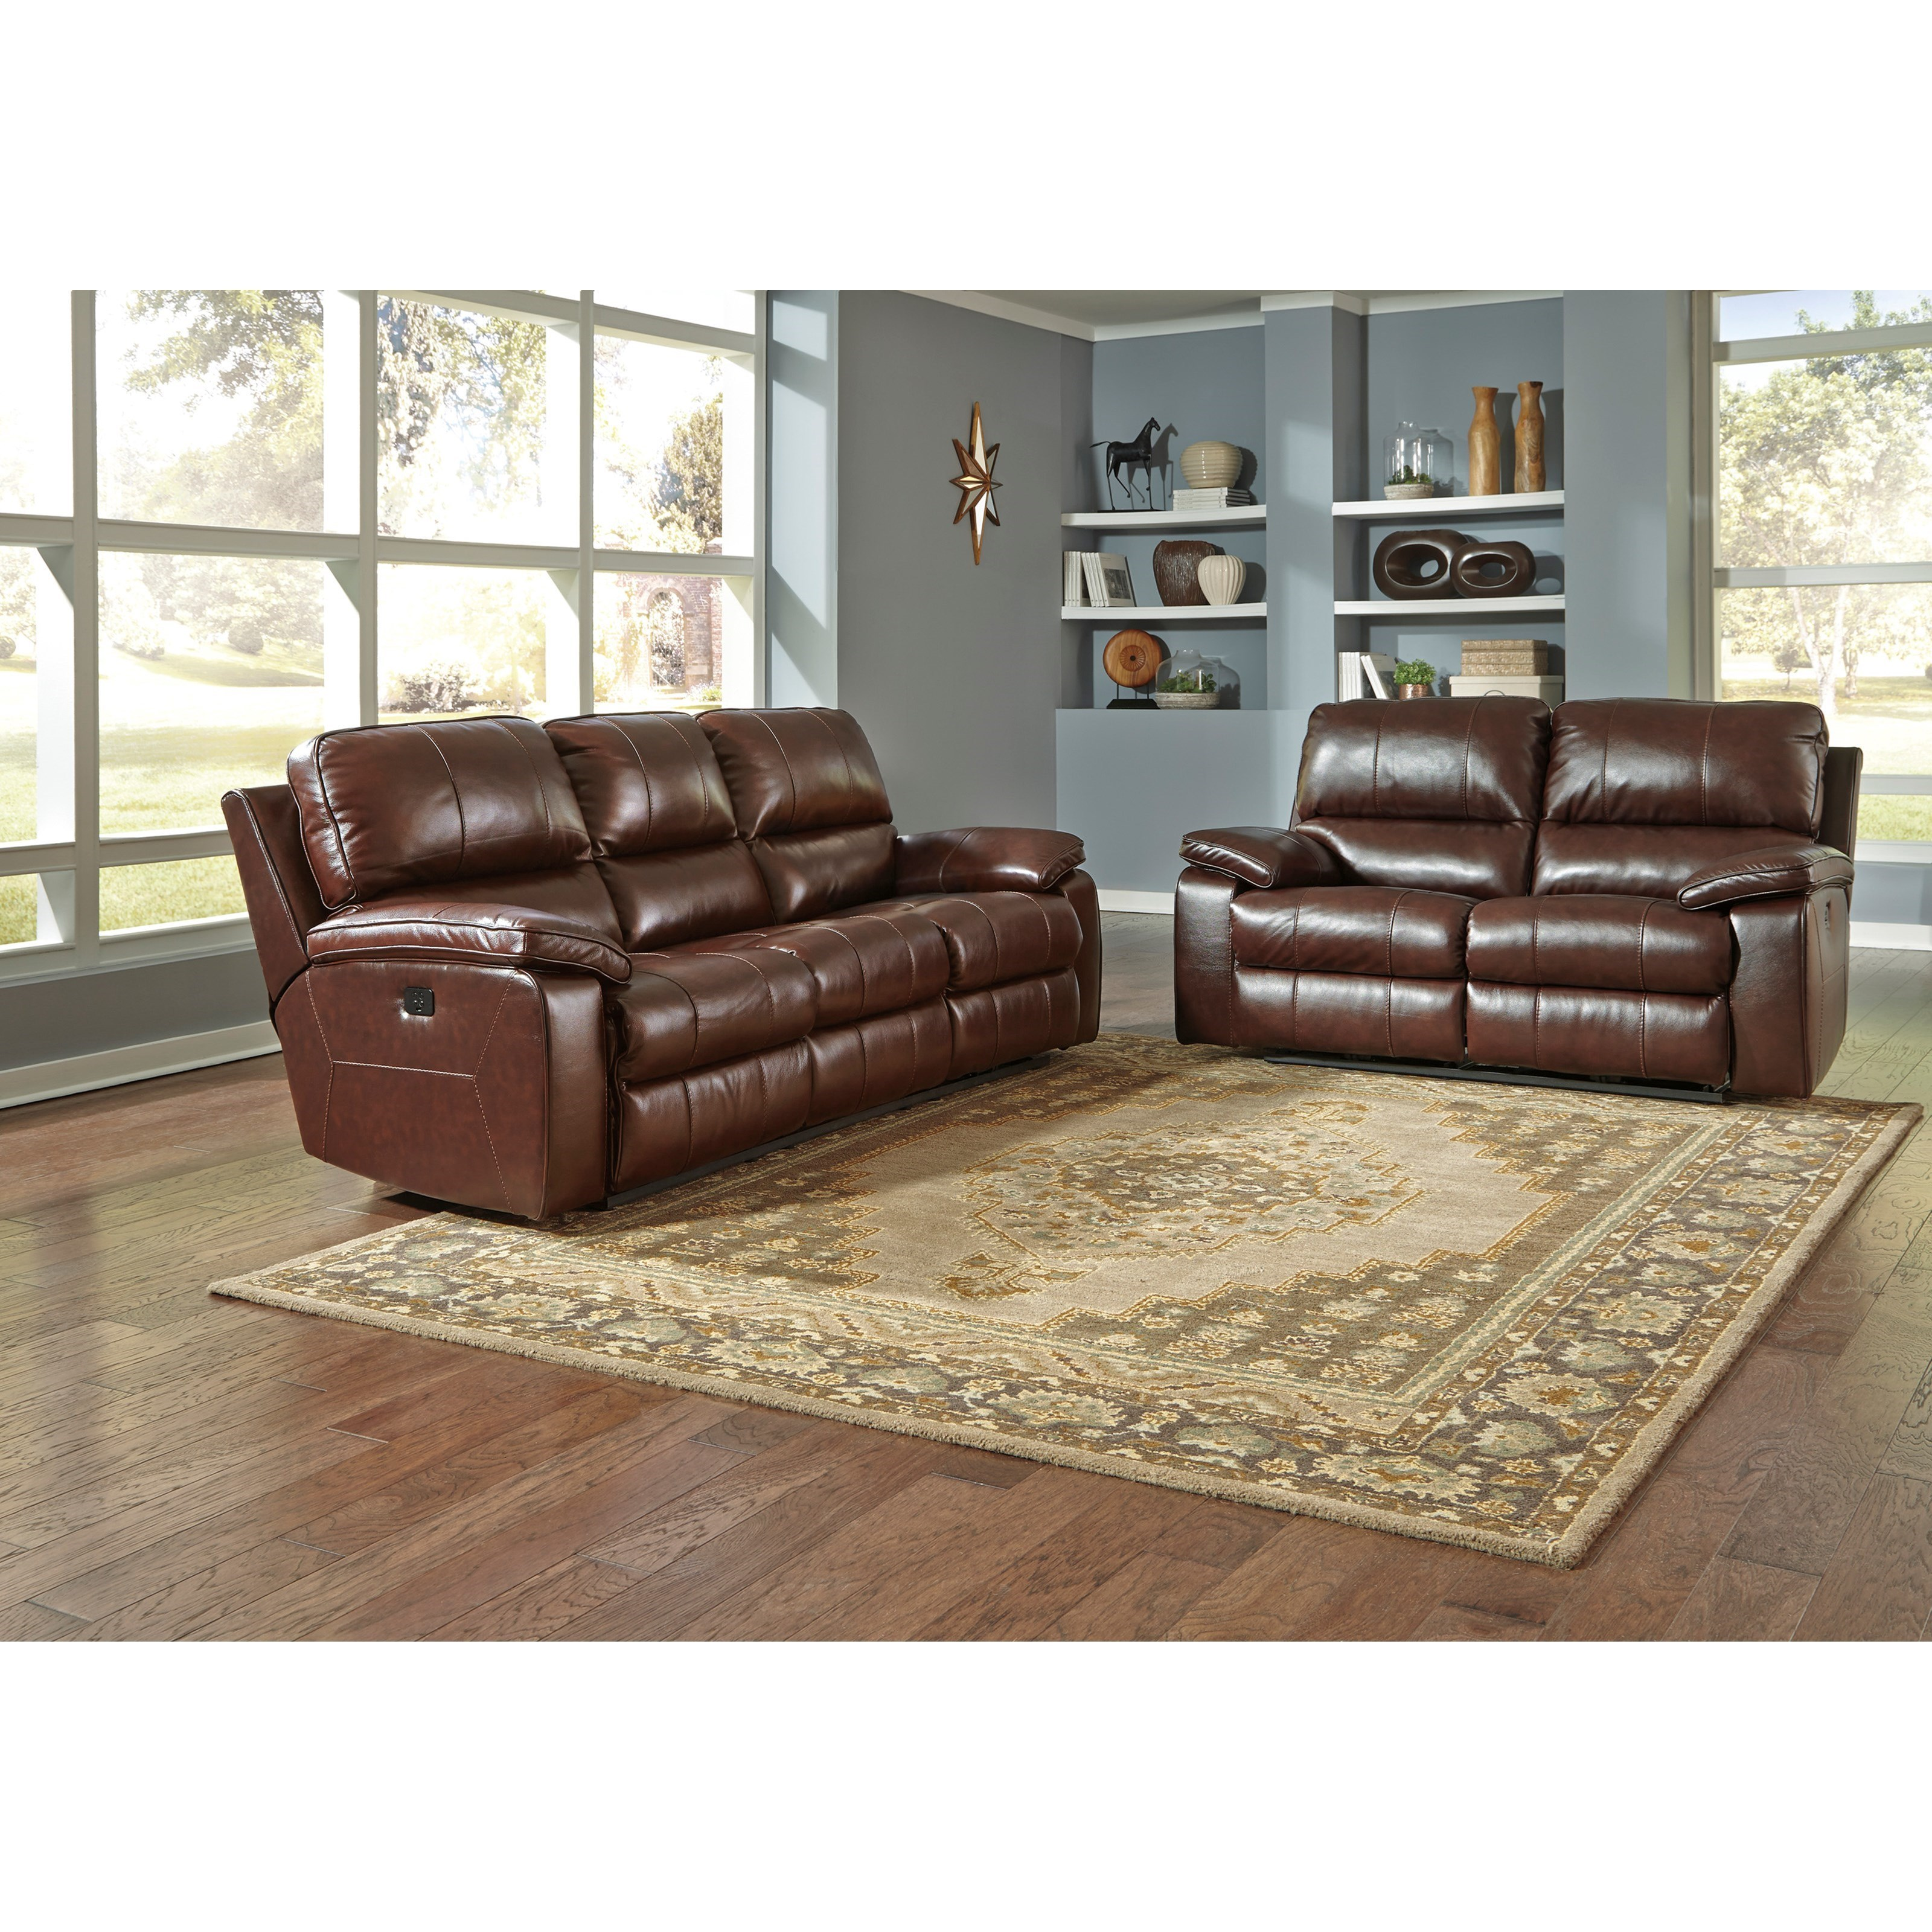 Signature Design by Ashley Transister Reclining Living